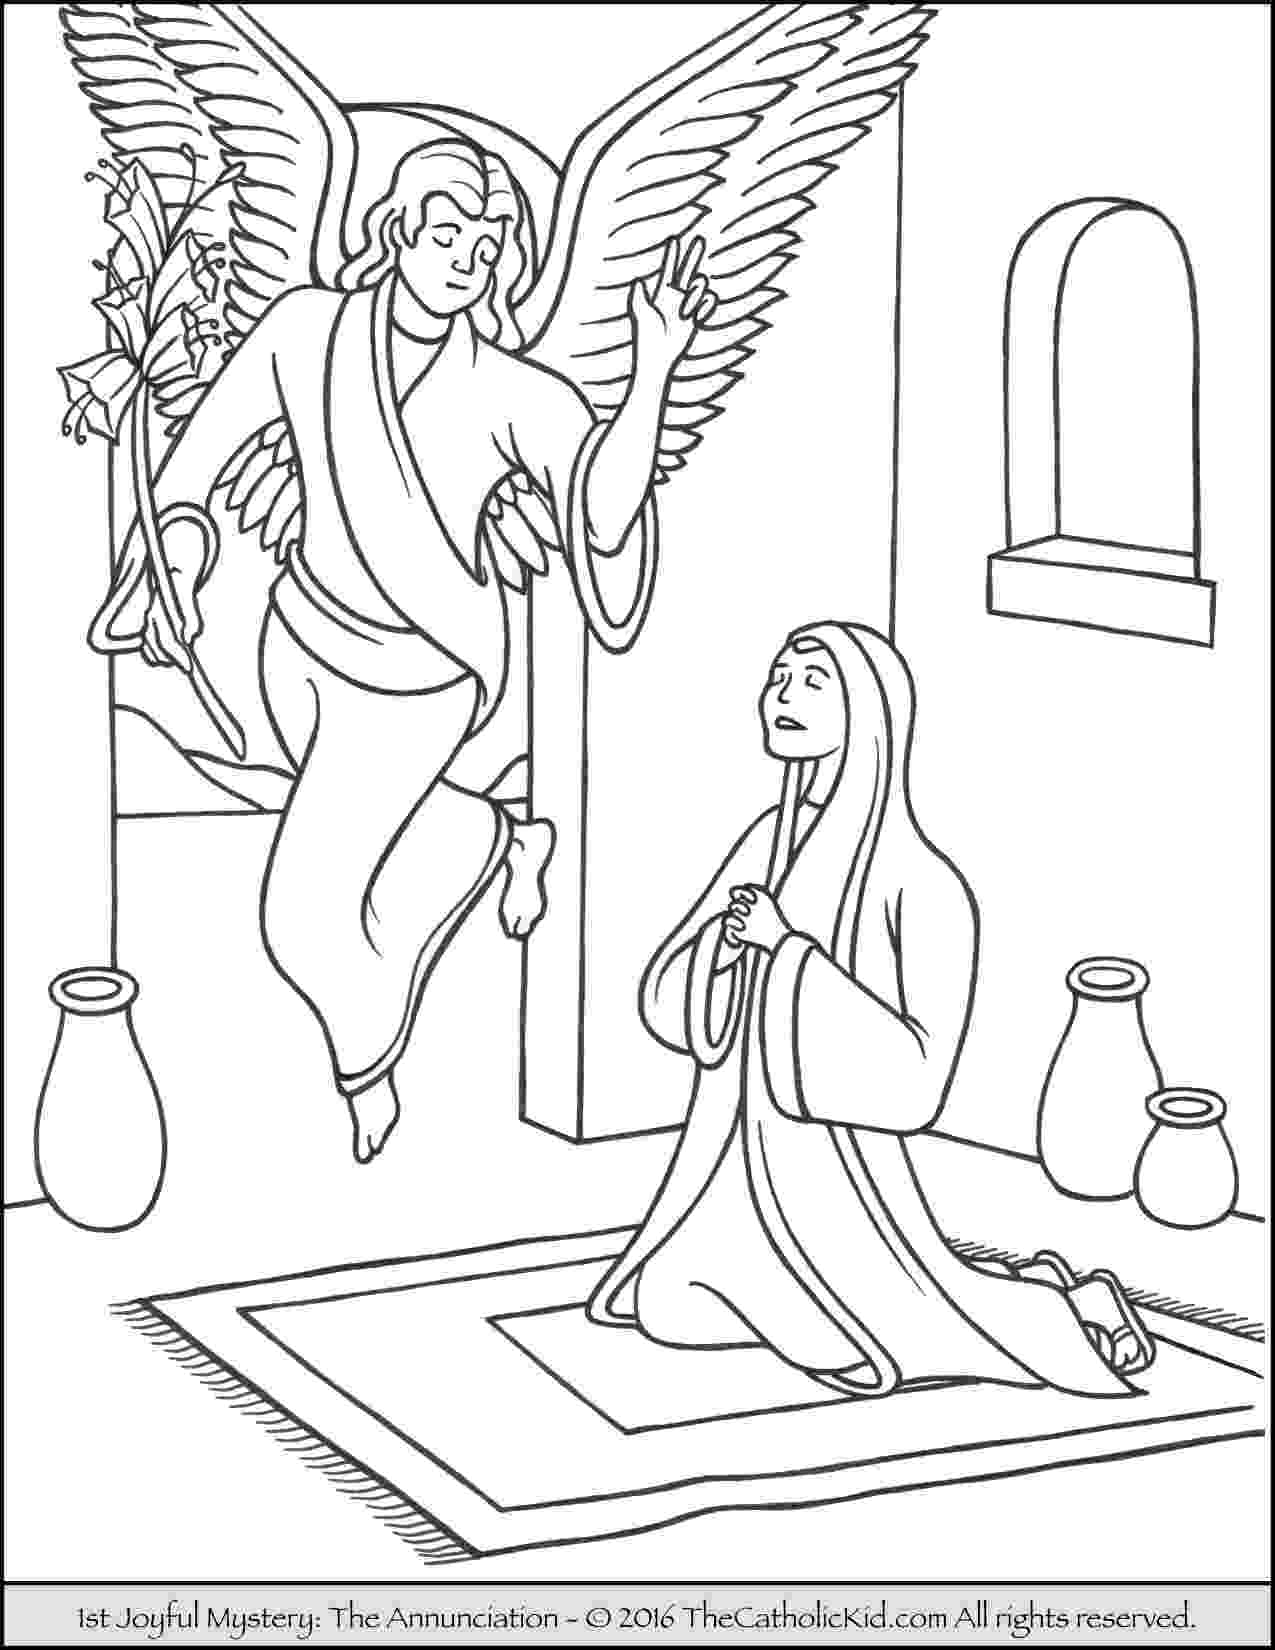 gabriel visits mary coloring page gabriel visits mary coloring page gabriel visits mary coloring page